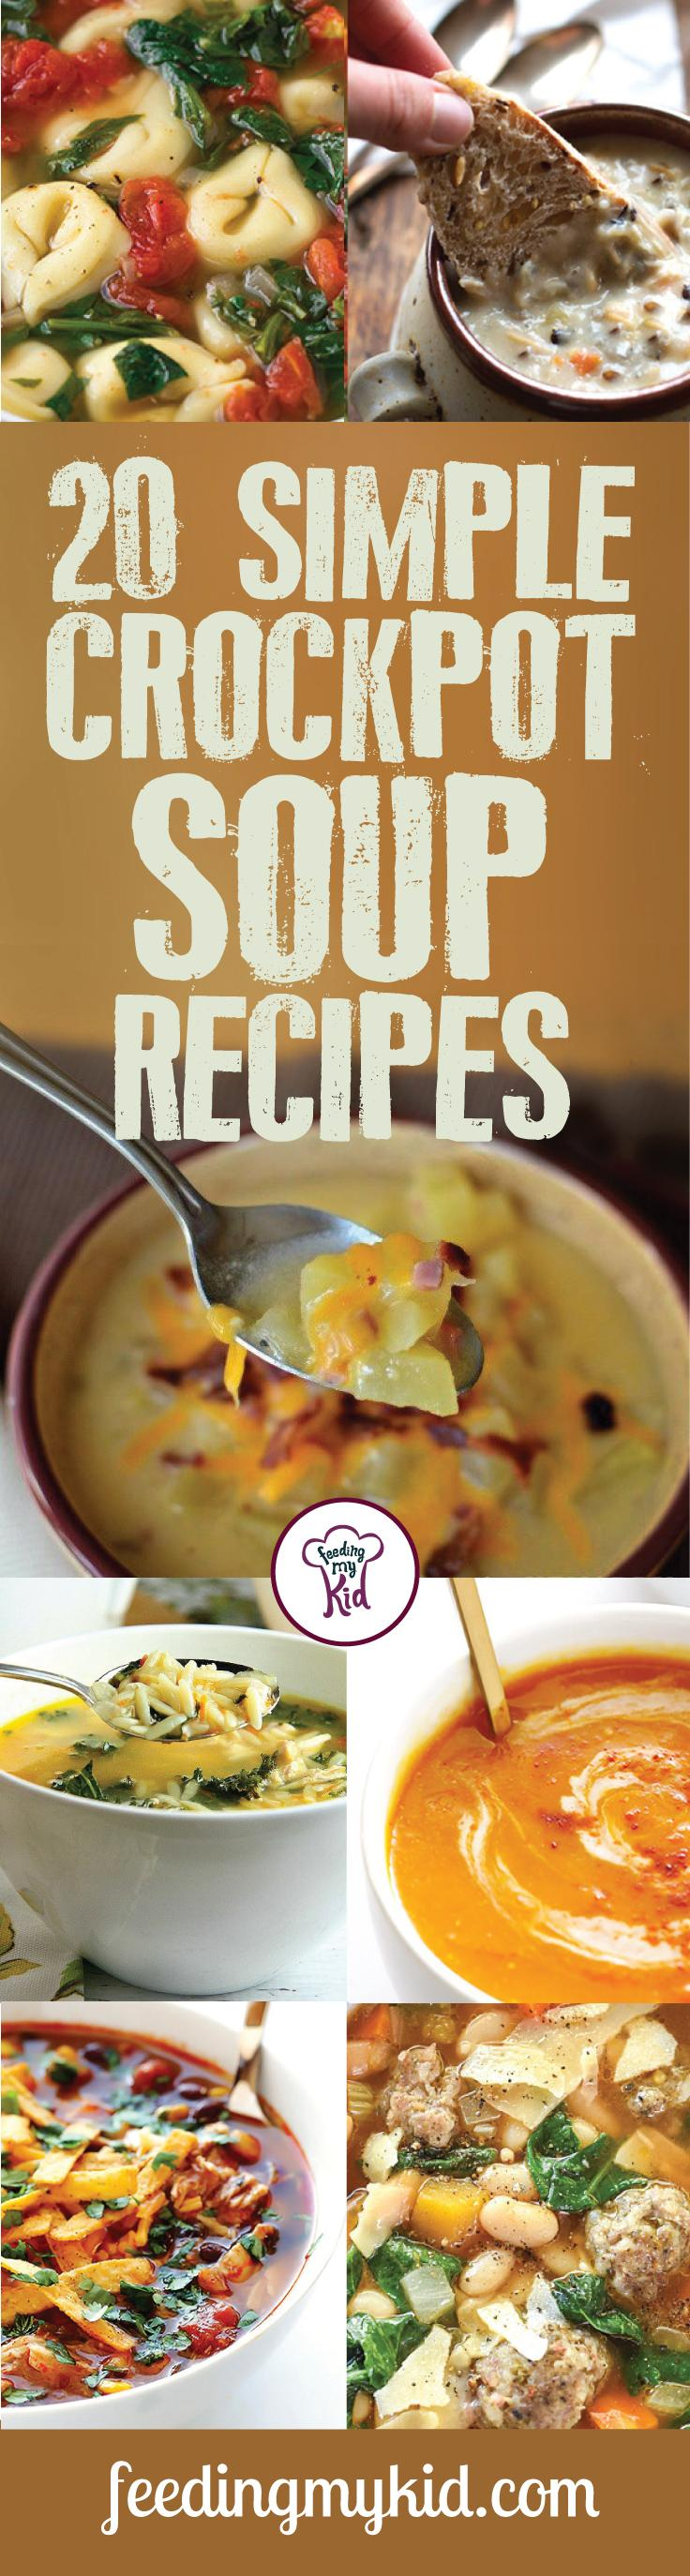 20 Simple Crockpot Soup Recipes - These amazing soup recipes are a must share and must pin! They're perfect for the whole family! From slow cooker black bean soup to spicy chicken soup; these recipes are amazing! So give these a go! There's rich in nutrients, high in fiber and the perfect recipes that will get kids to eat their vegetables! #fmk #recipes #crockpot